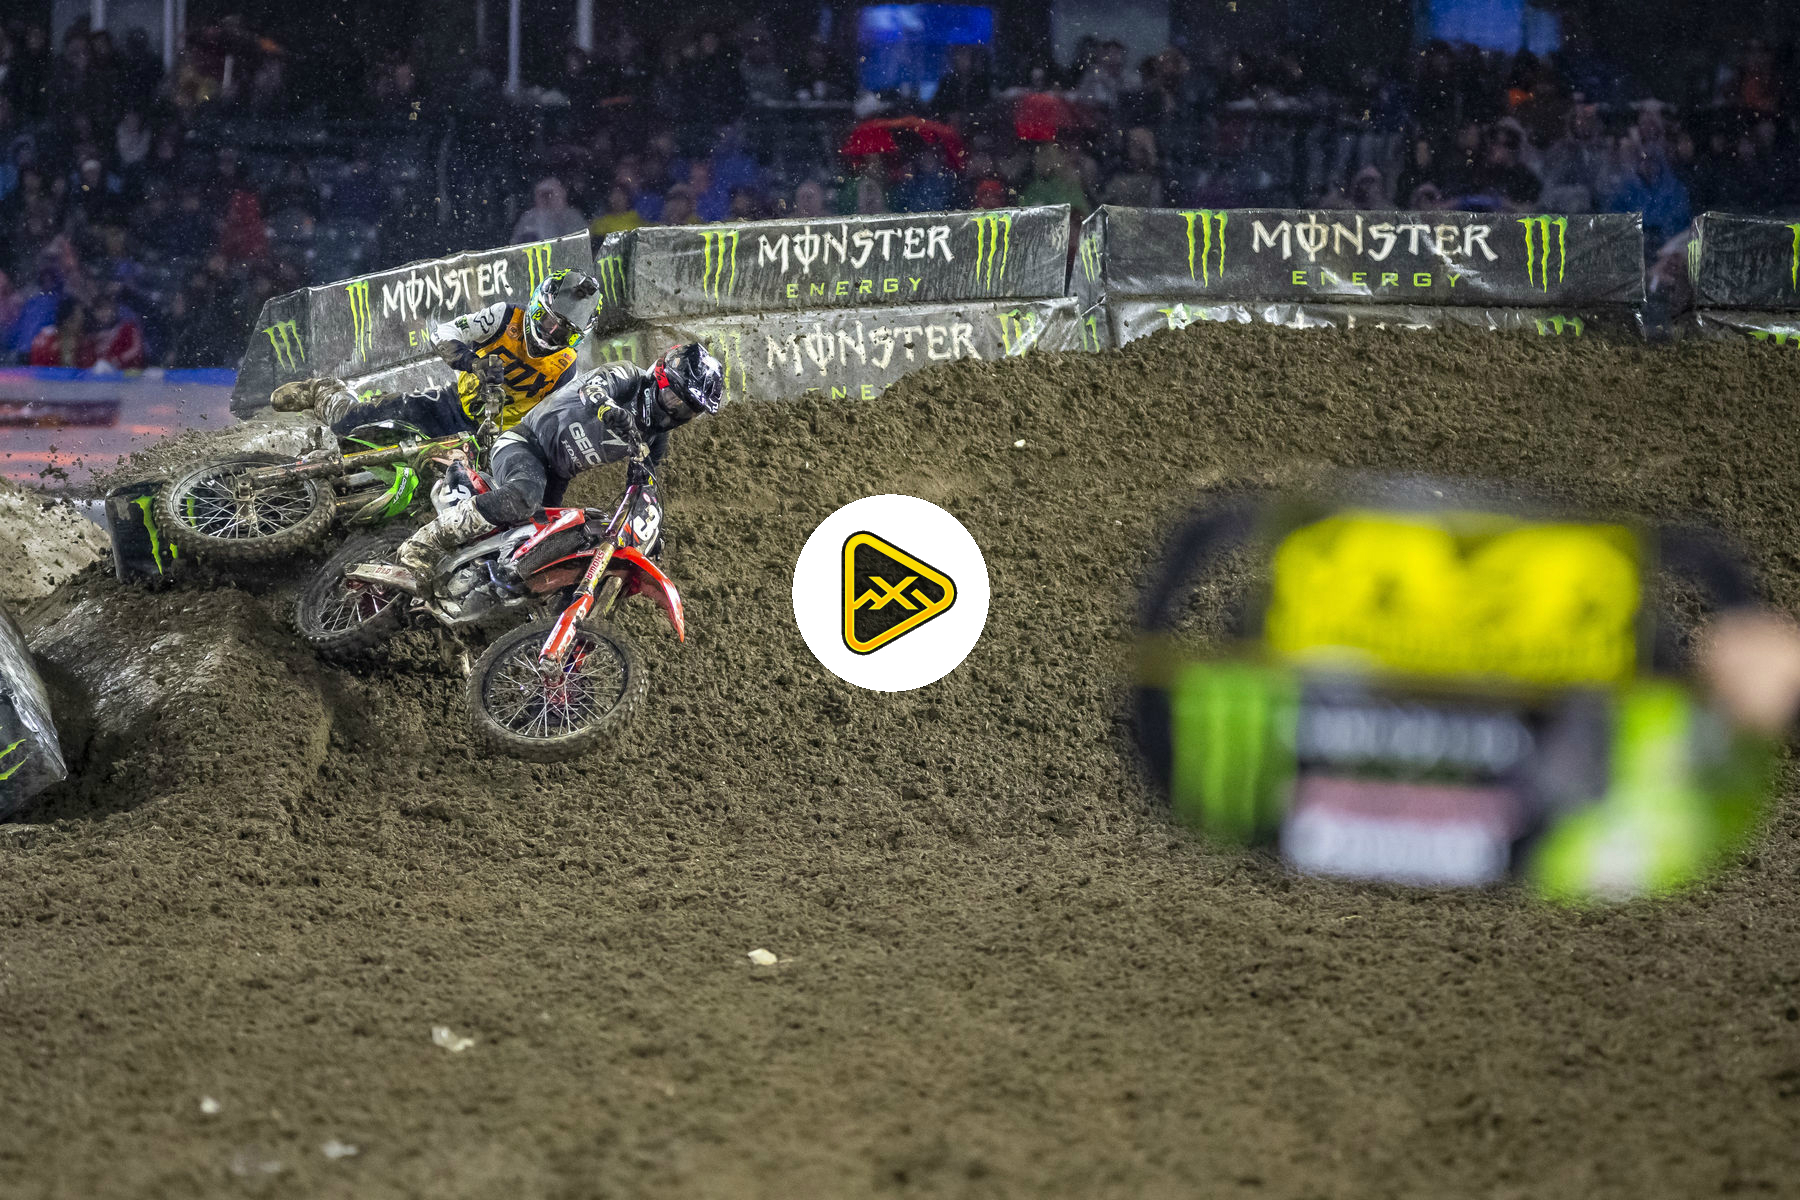 Hampshire Serves up Some Payback to Cianciarulo